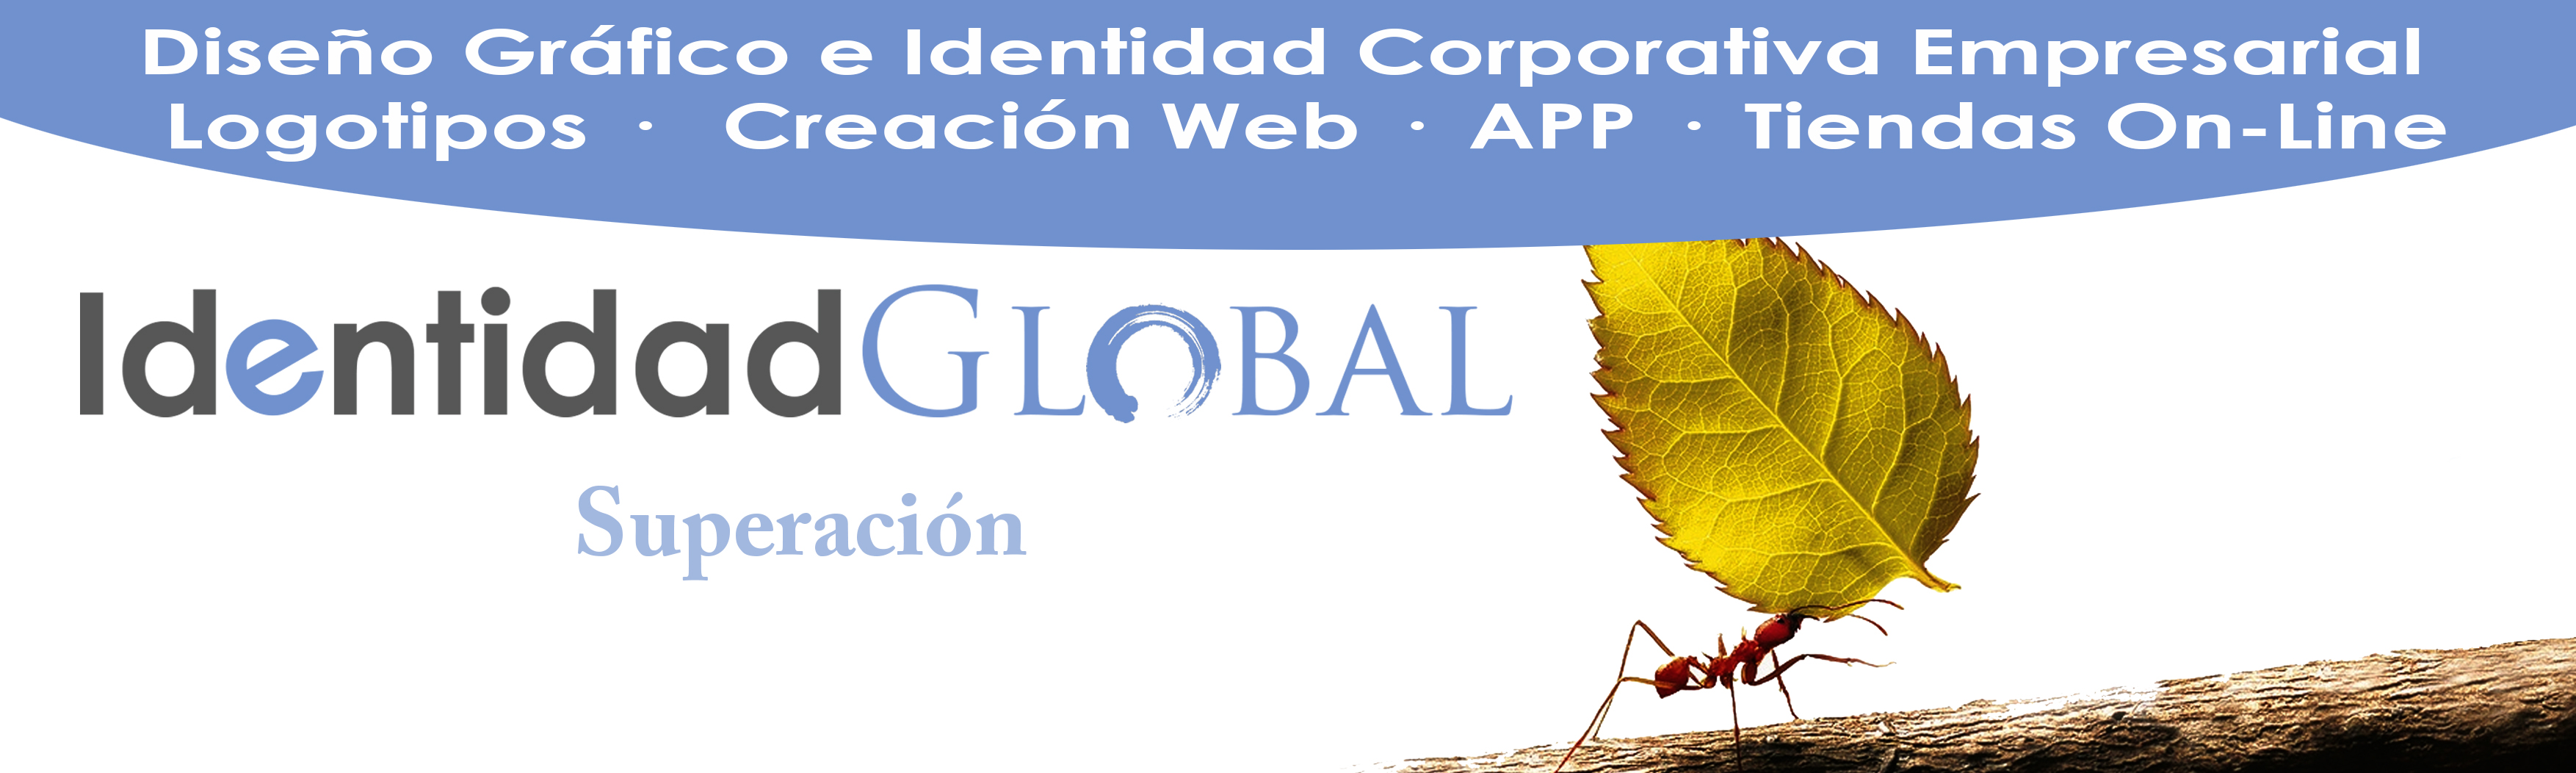 Identidad Global Superacion